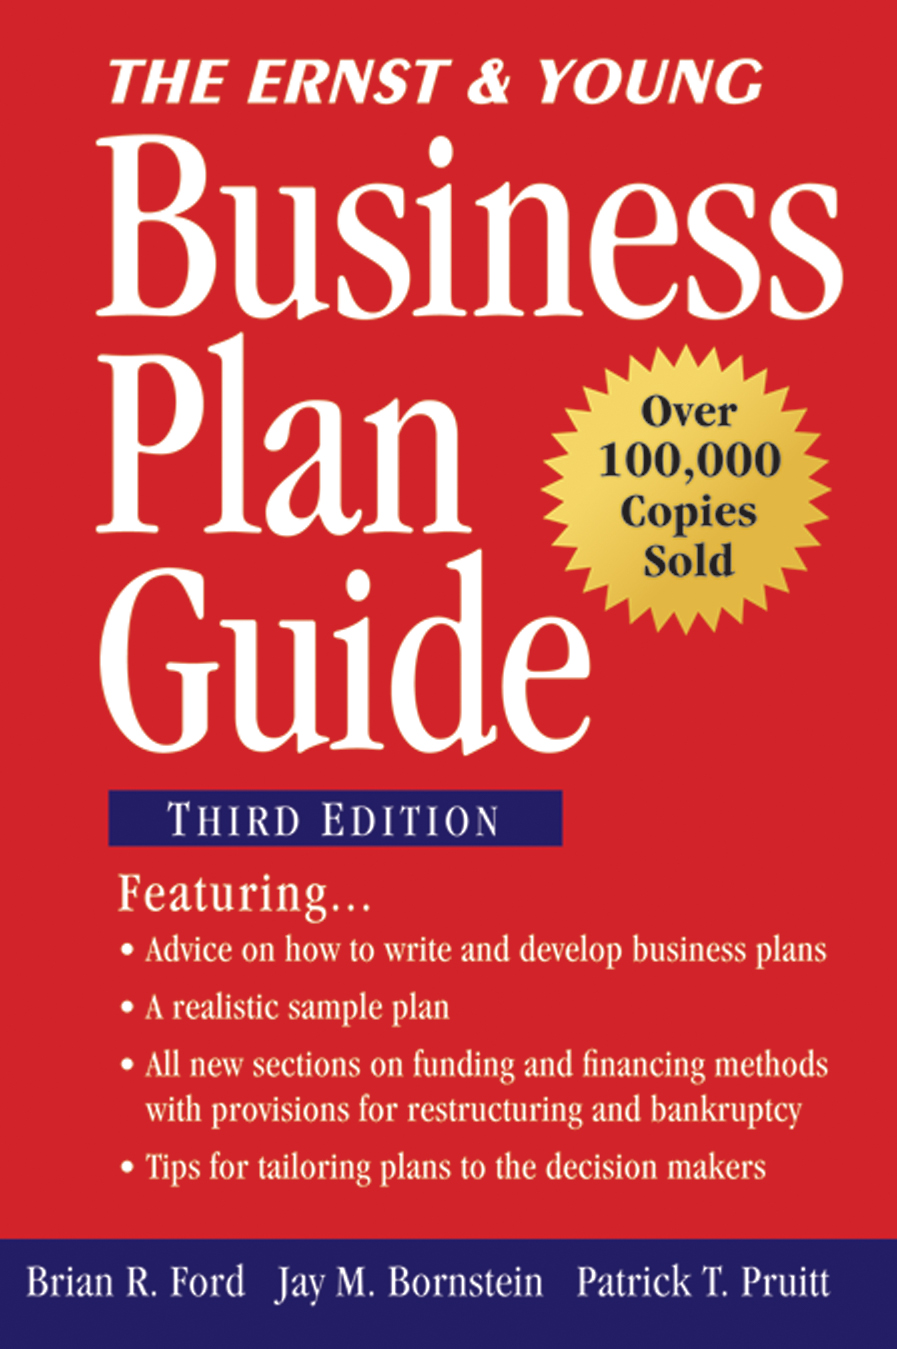 Download Ebook The Ernst & Young Business Plan Guide (3rd ed.) by Brian R. Ford Pdf